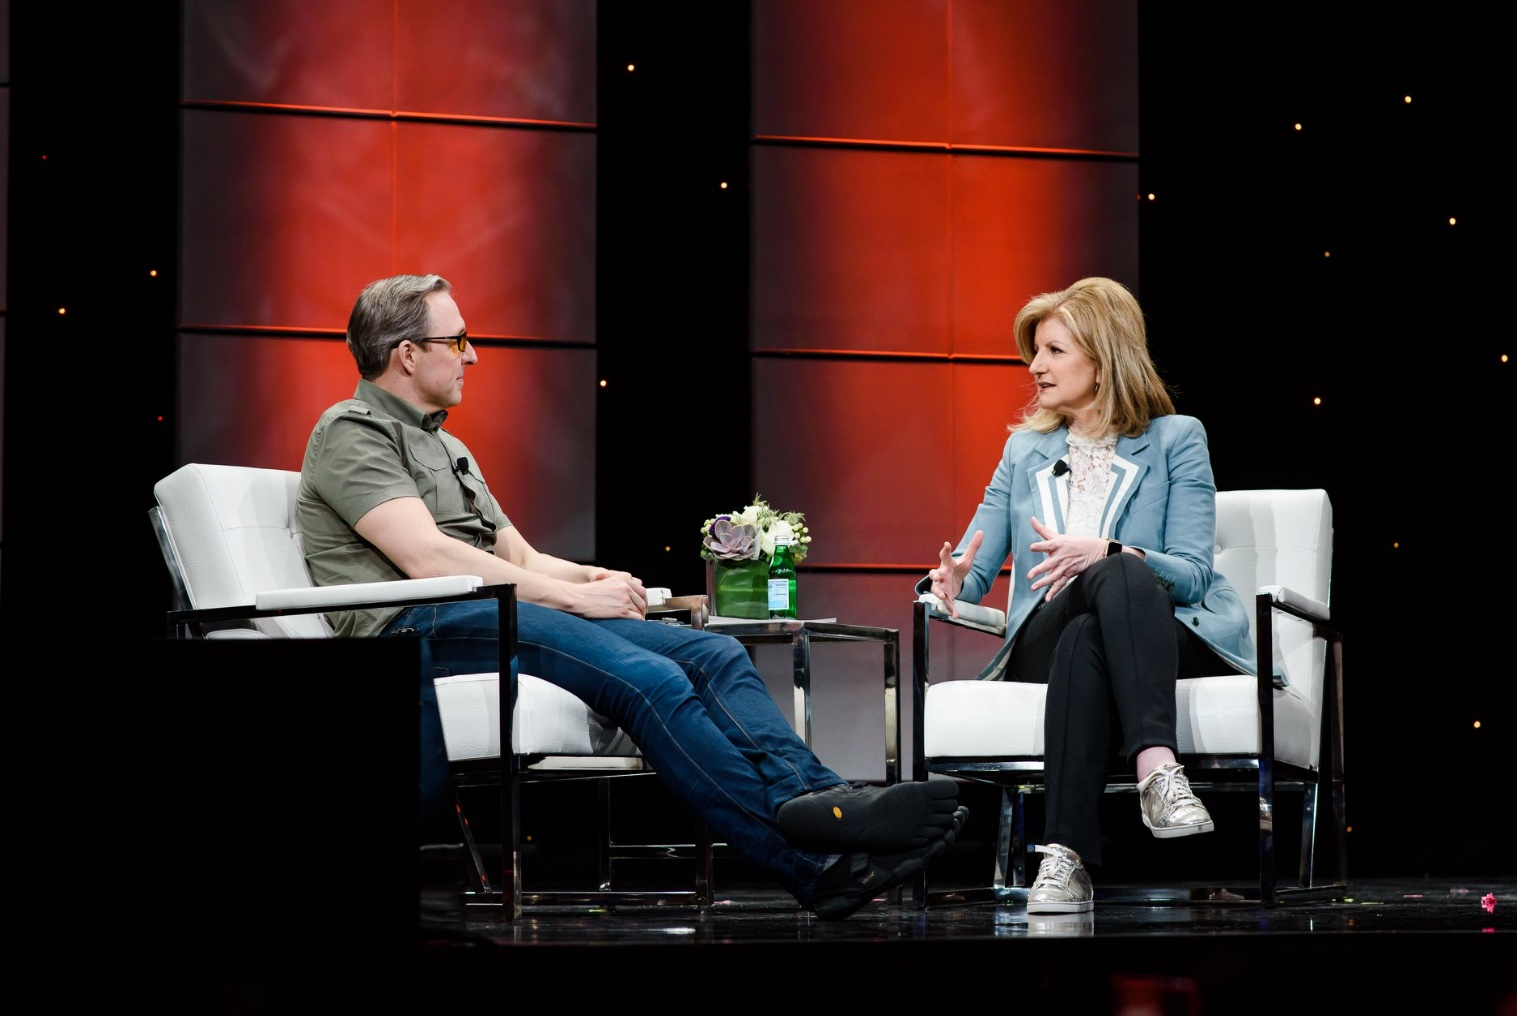 Arianna Huffington in an interview with guest on stage